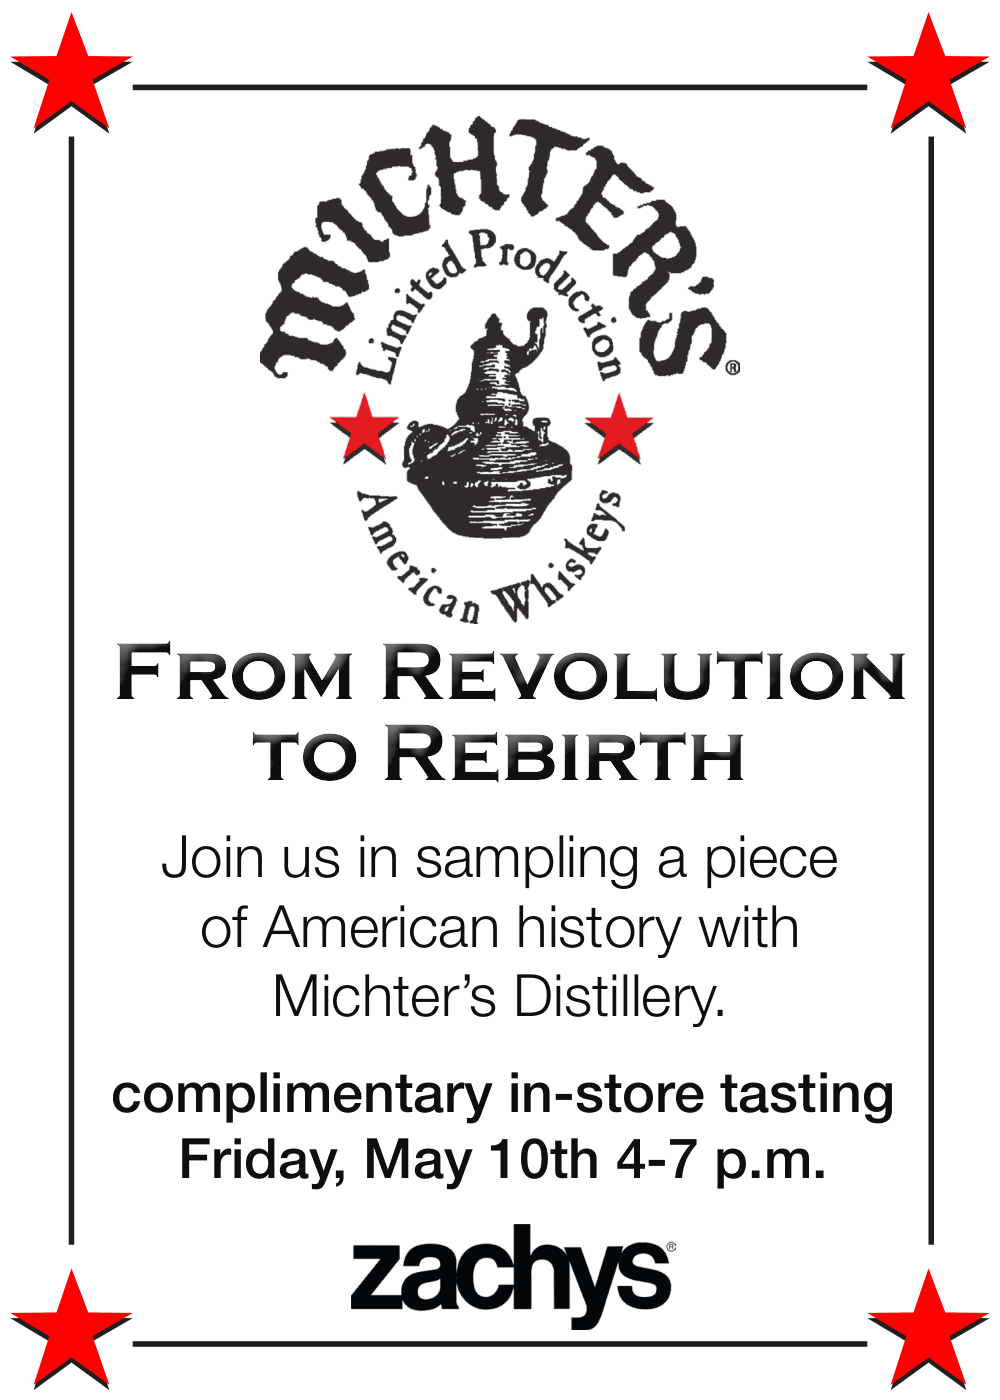 Michter's tasting event 5x7 face-plate poster, red stars in poster corners